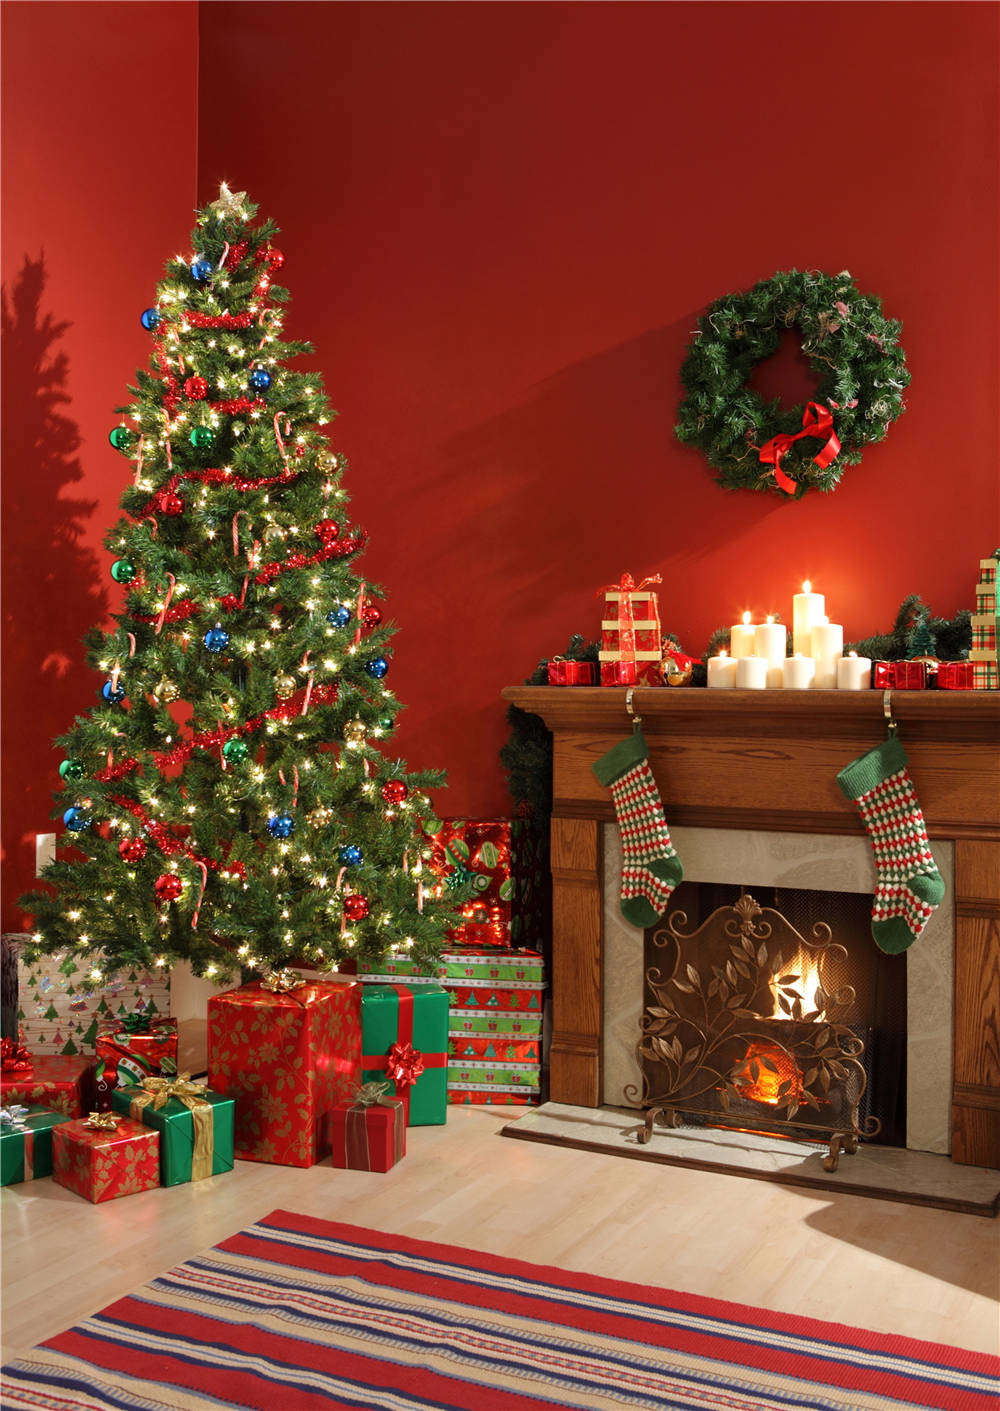 Vinyl 5x7ft or 3x5ft Fireplace Photography Backdrops Christmas Tree Gift Photo Props Studio Background christmas006 shengyongbao 300cm 200cm vinyl custom photography backdrops brick wall theme photo studio props photography background brw 12